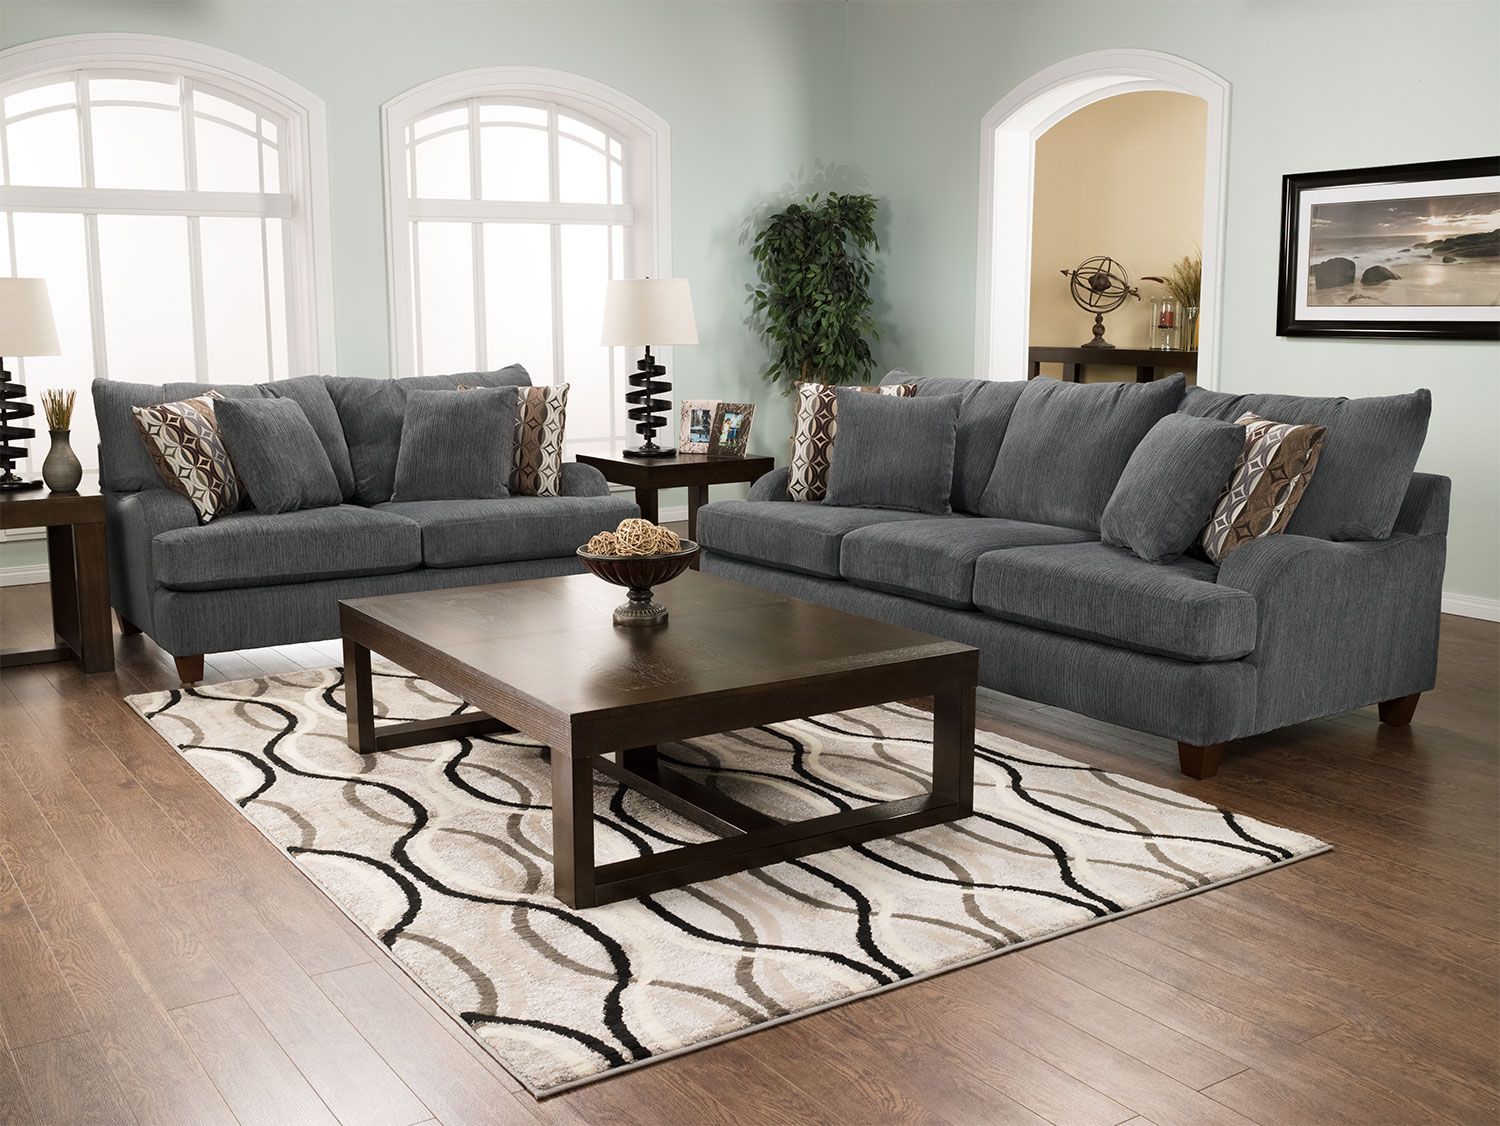 Putty Chenille Sofa - Grey | Rec room | 3 piece sectional ...